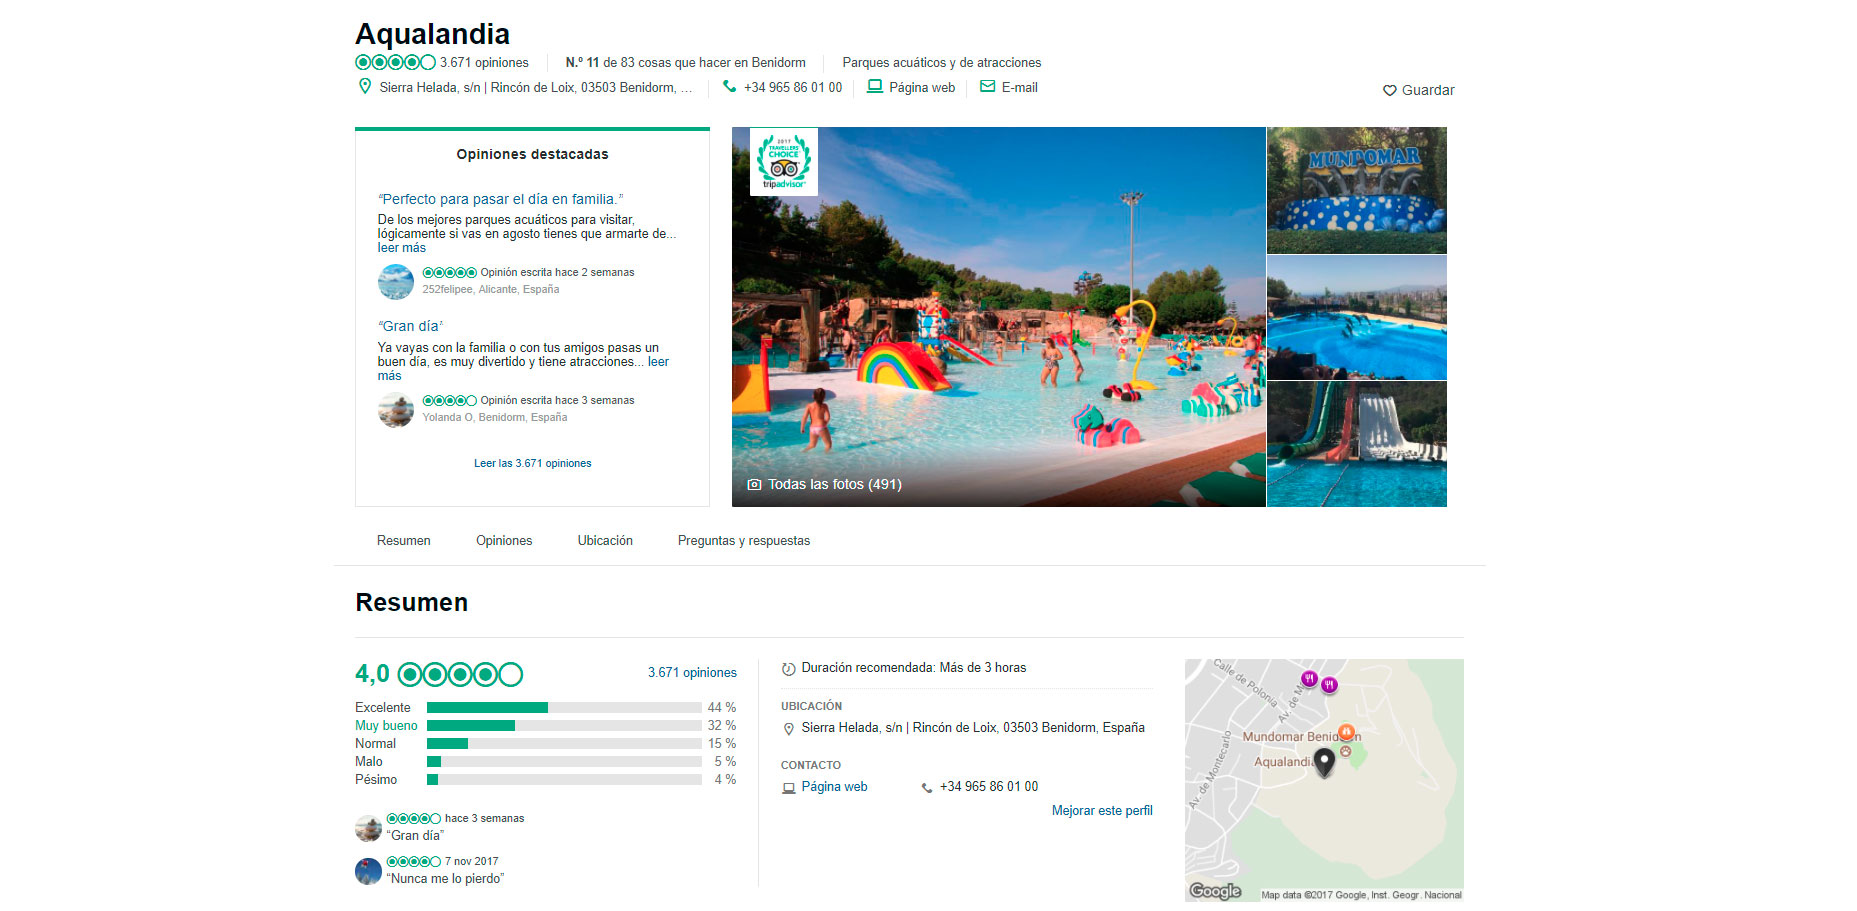 Aqualandia amongst the Best Water Parks of Spain according to TripAdvisor